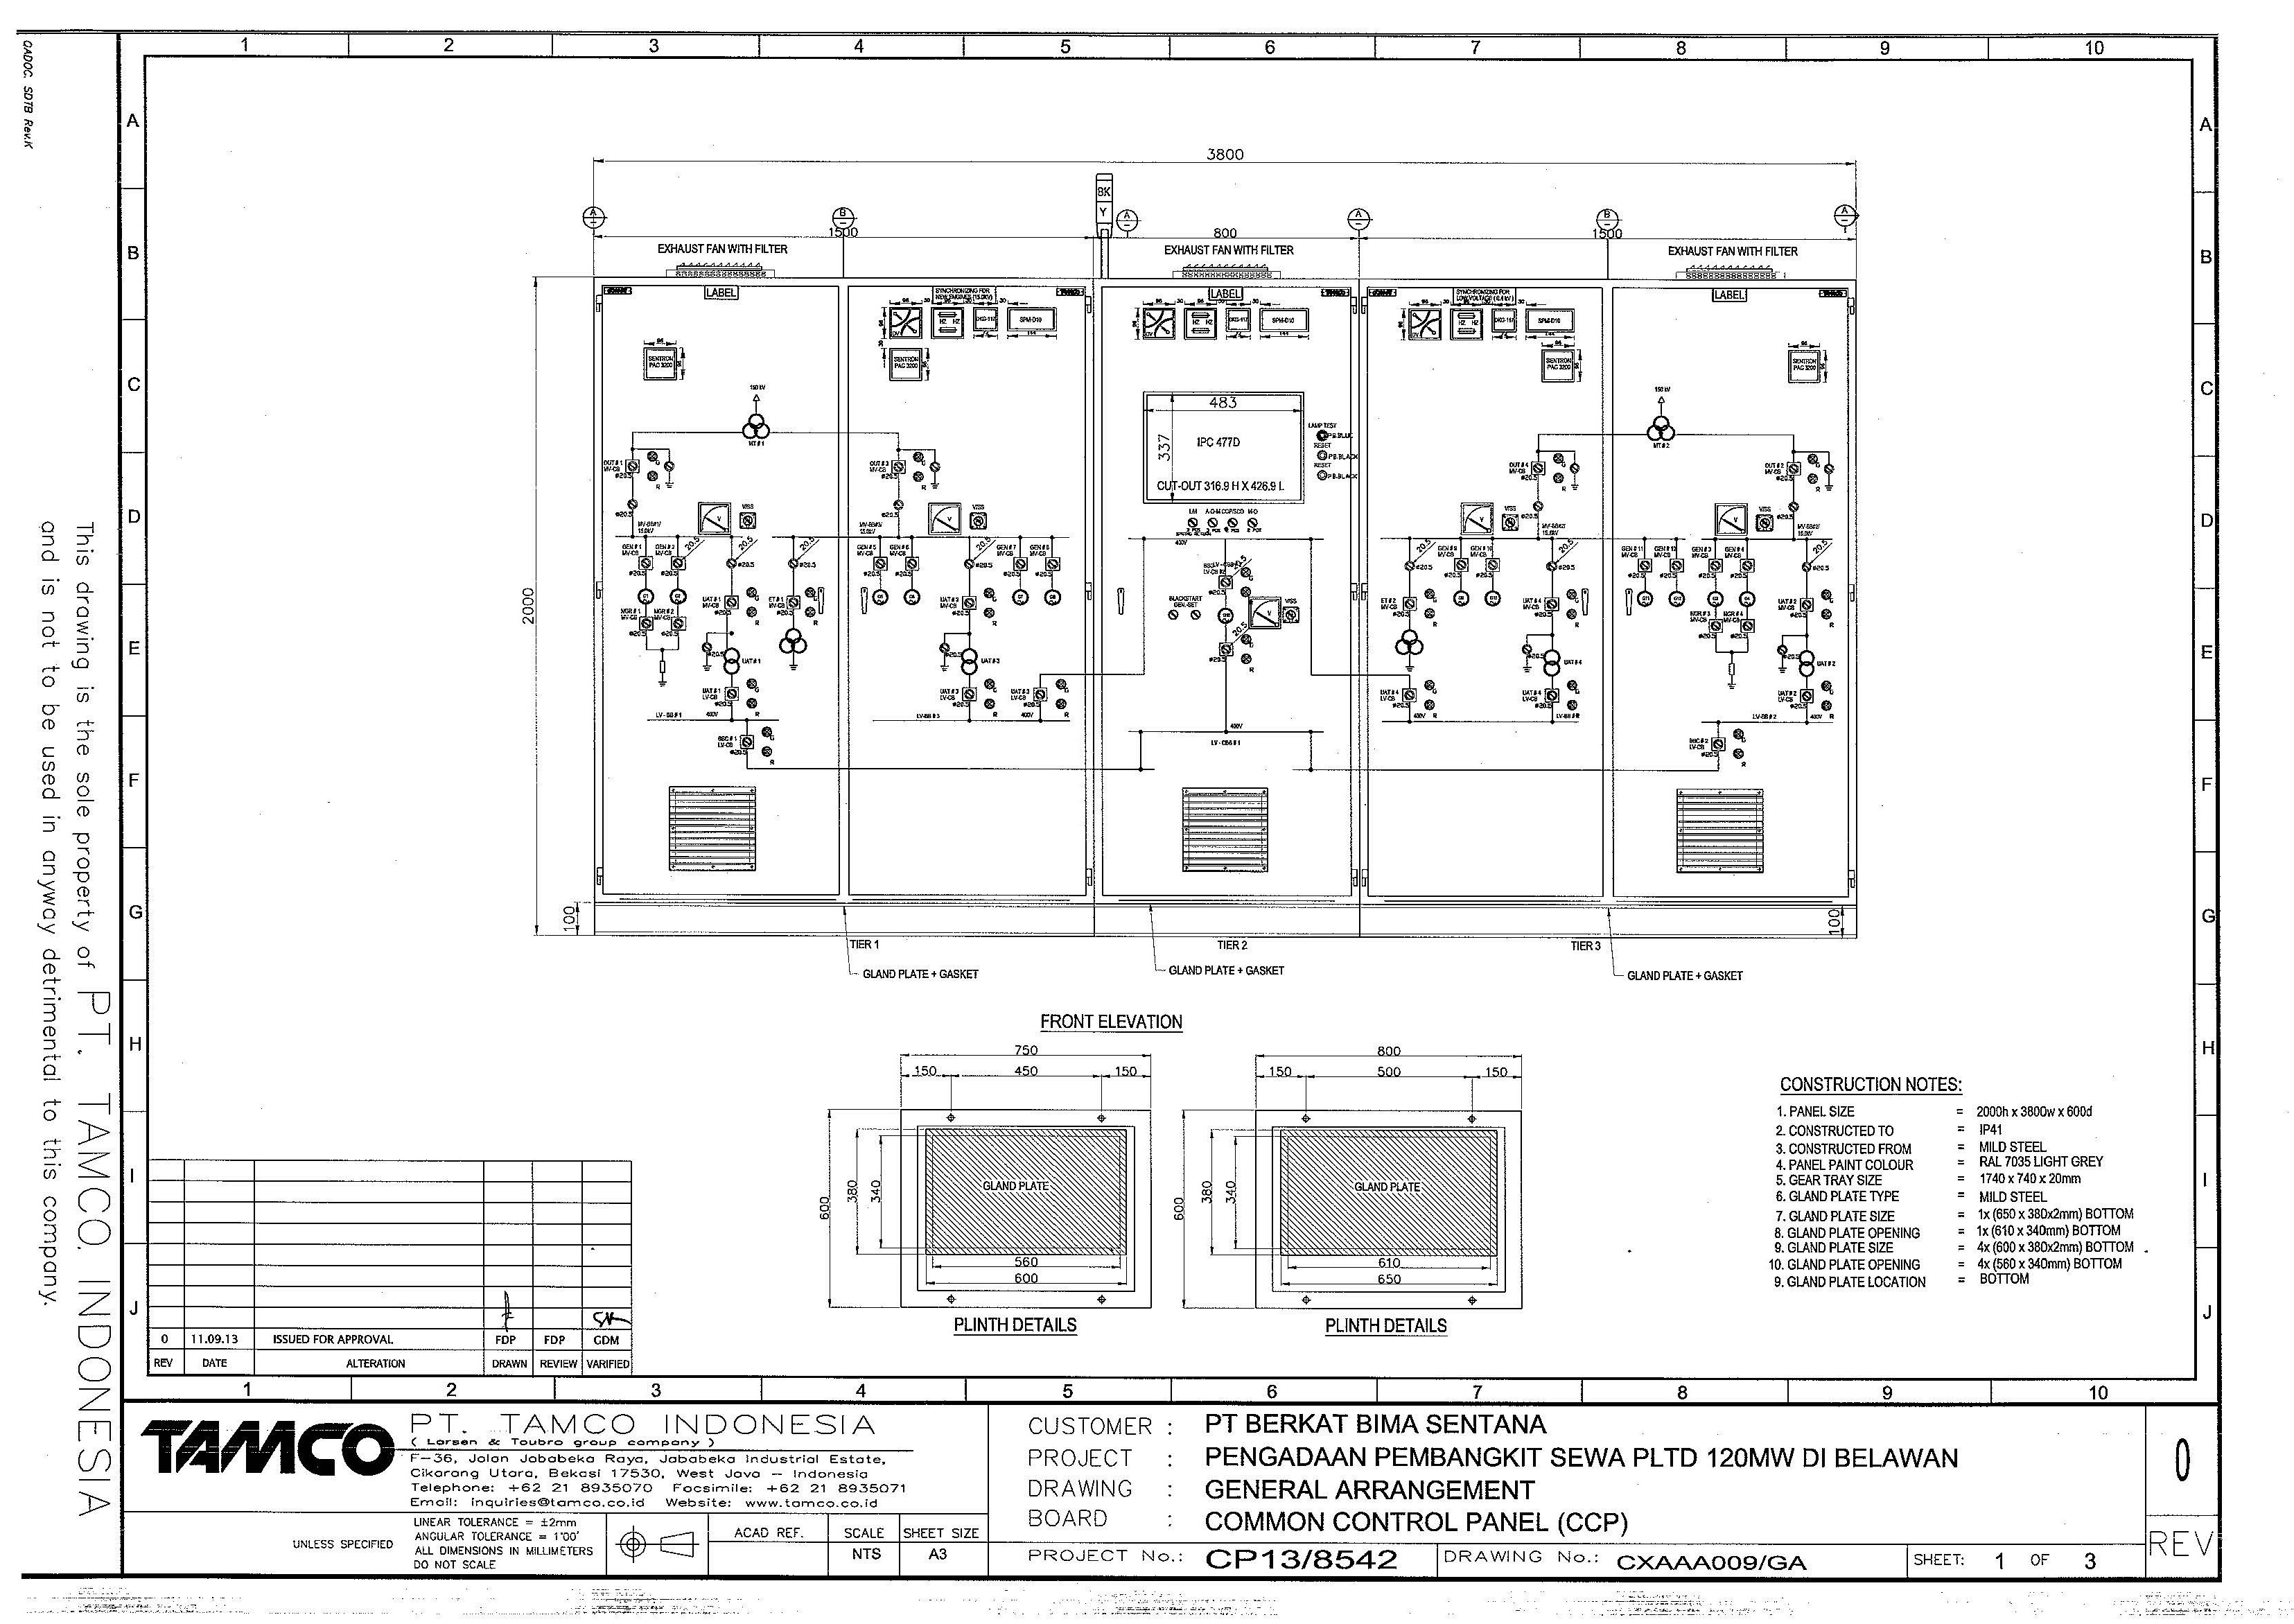 oil refinery layout diagram defrost clock wiring power plant arrangement diagrams